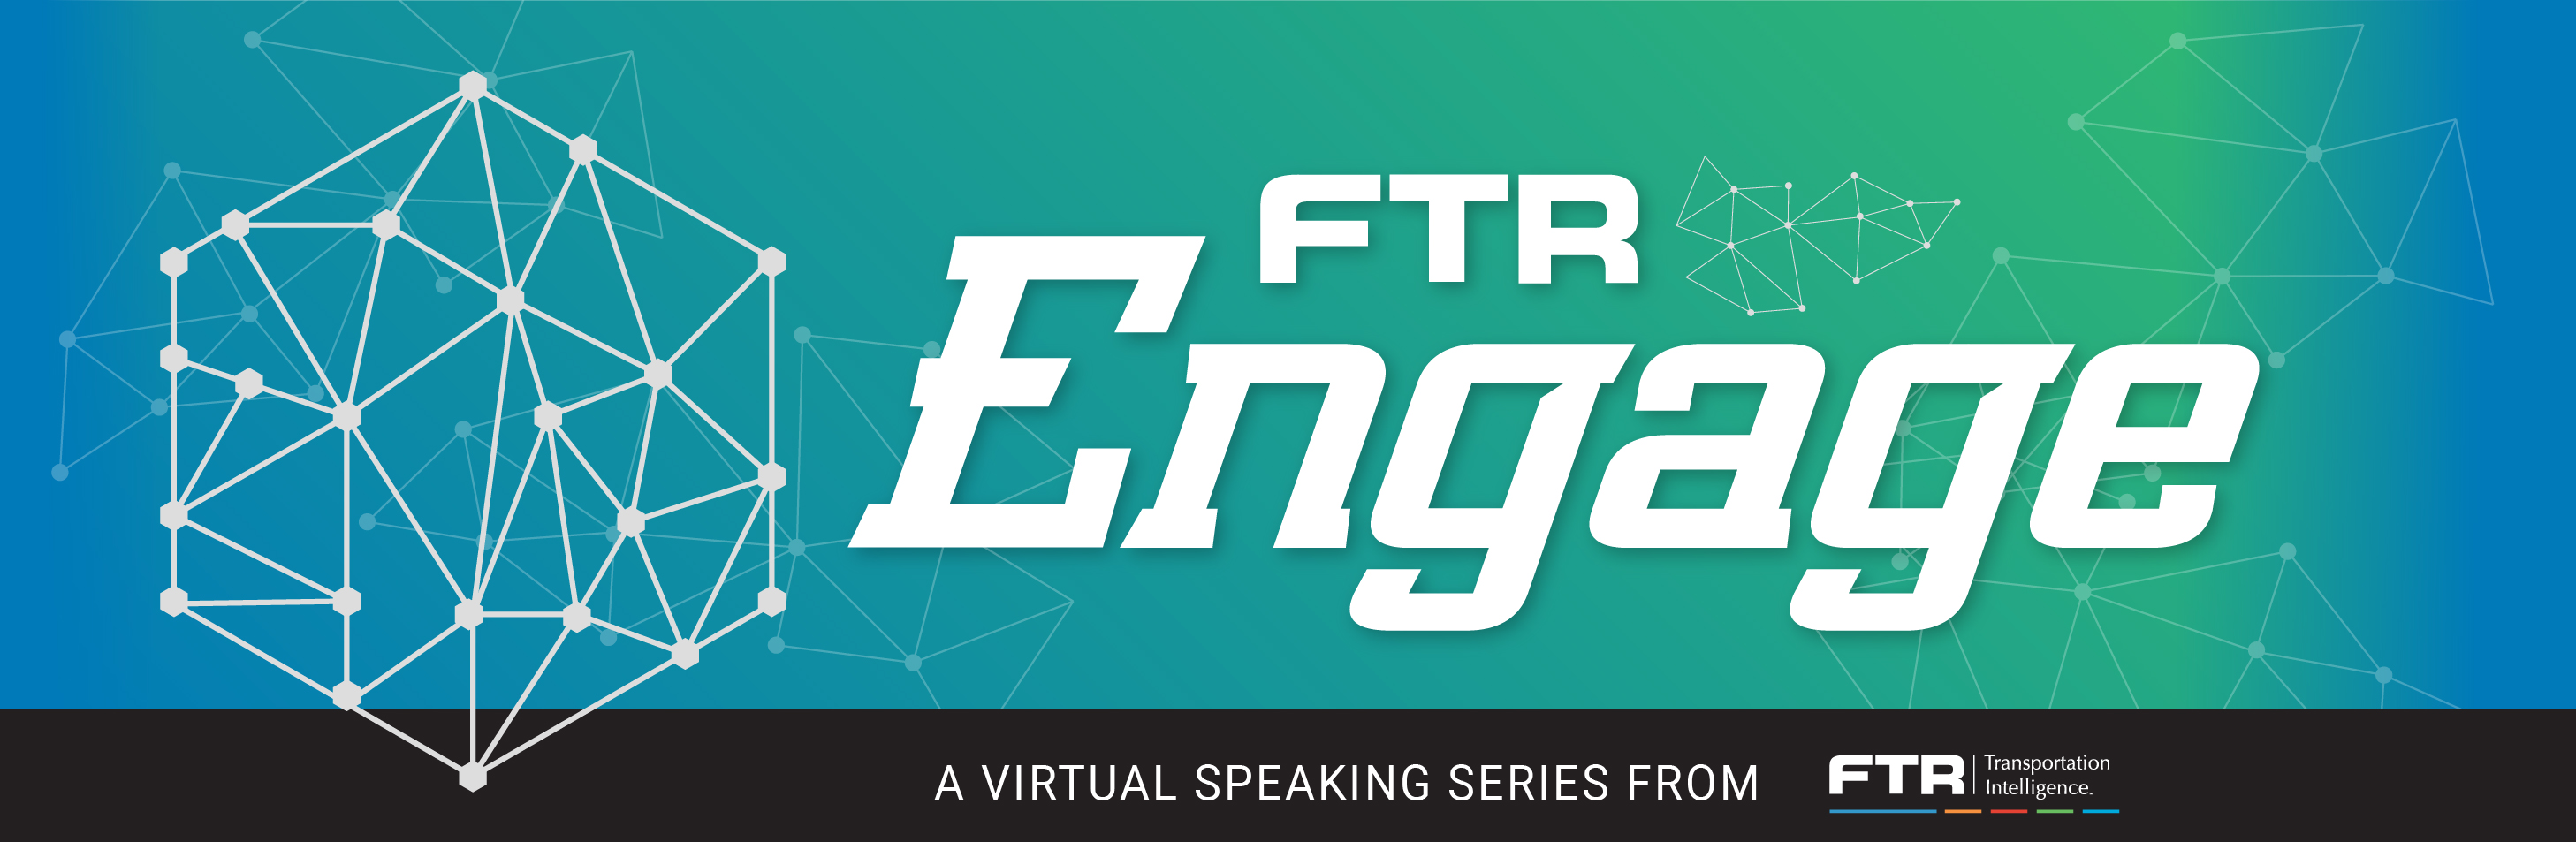 FTR Engage - Virtual Speaking Series